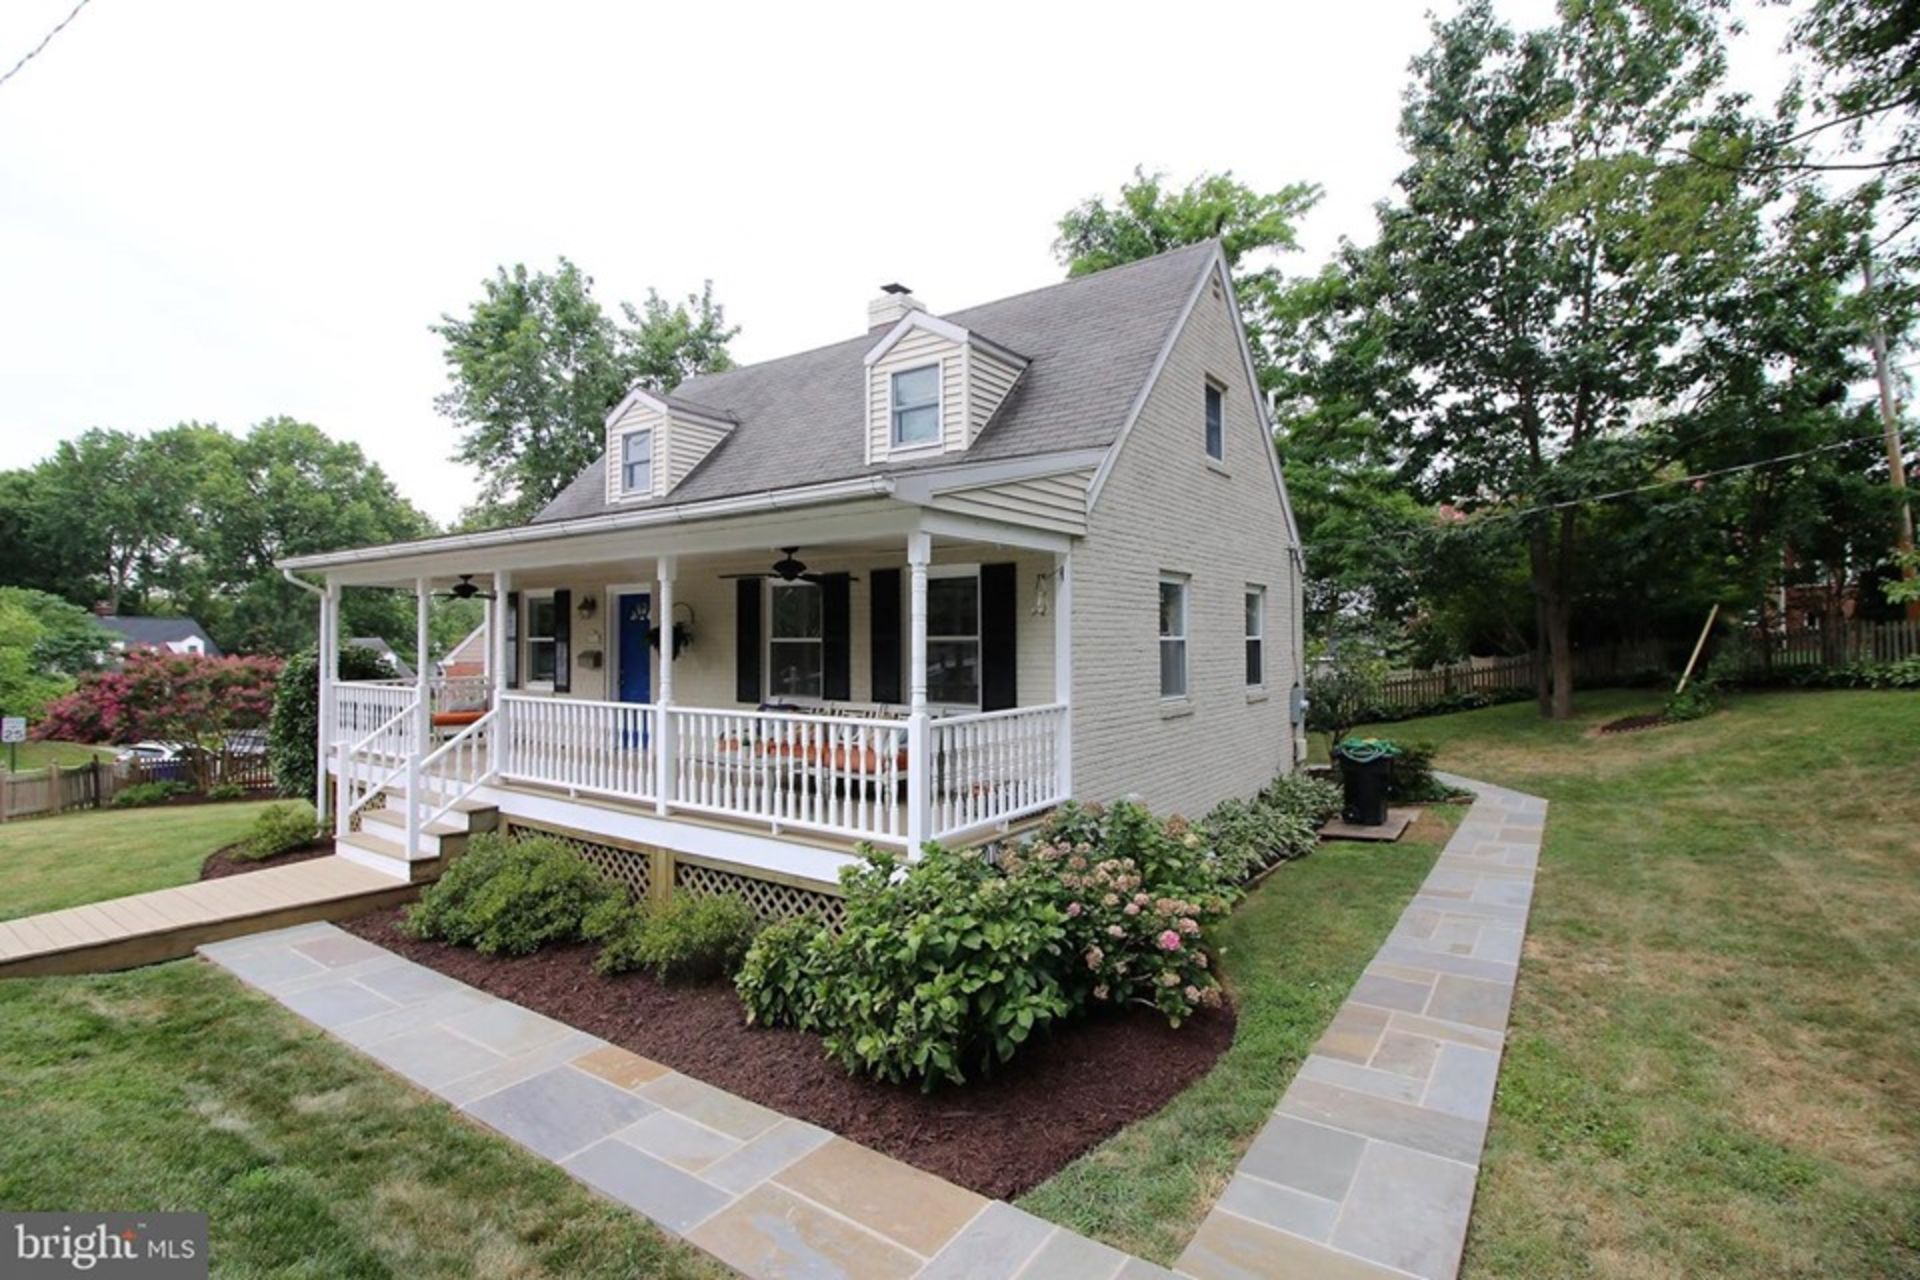 Buyers Under Contract on an Off-Market Home in Arlington, VA